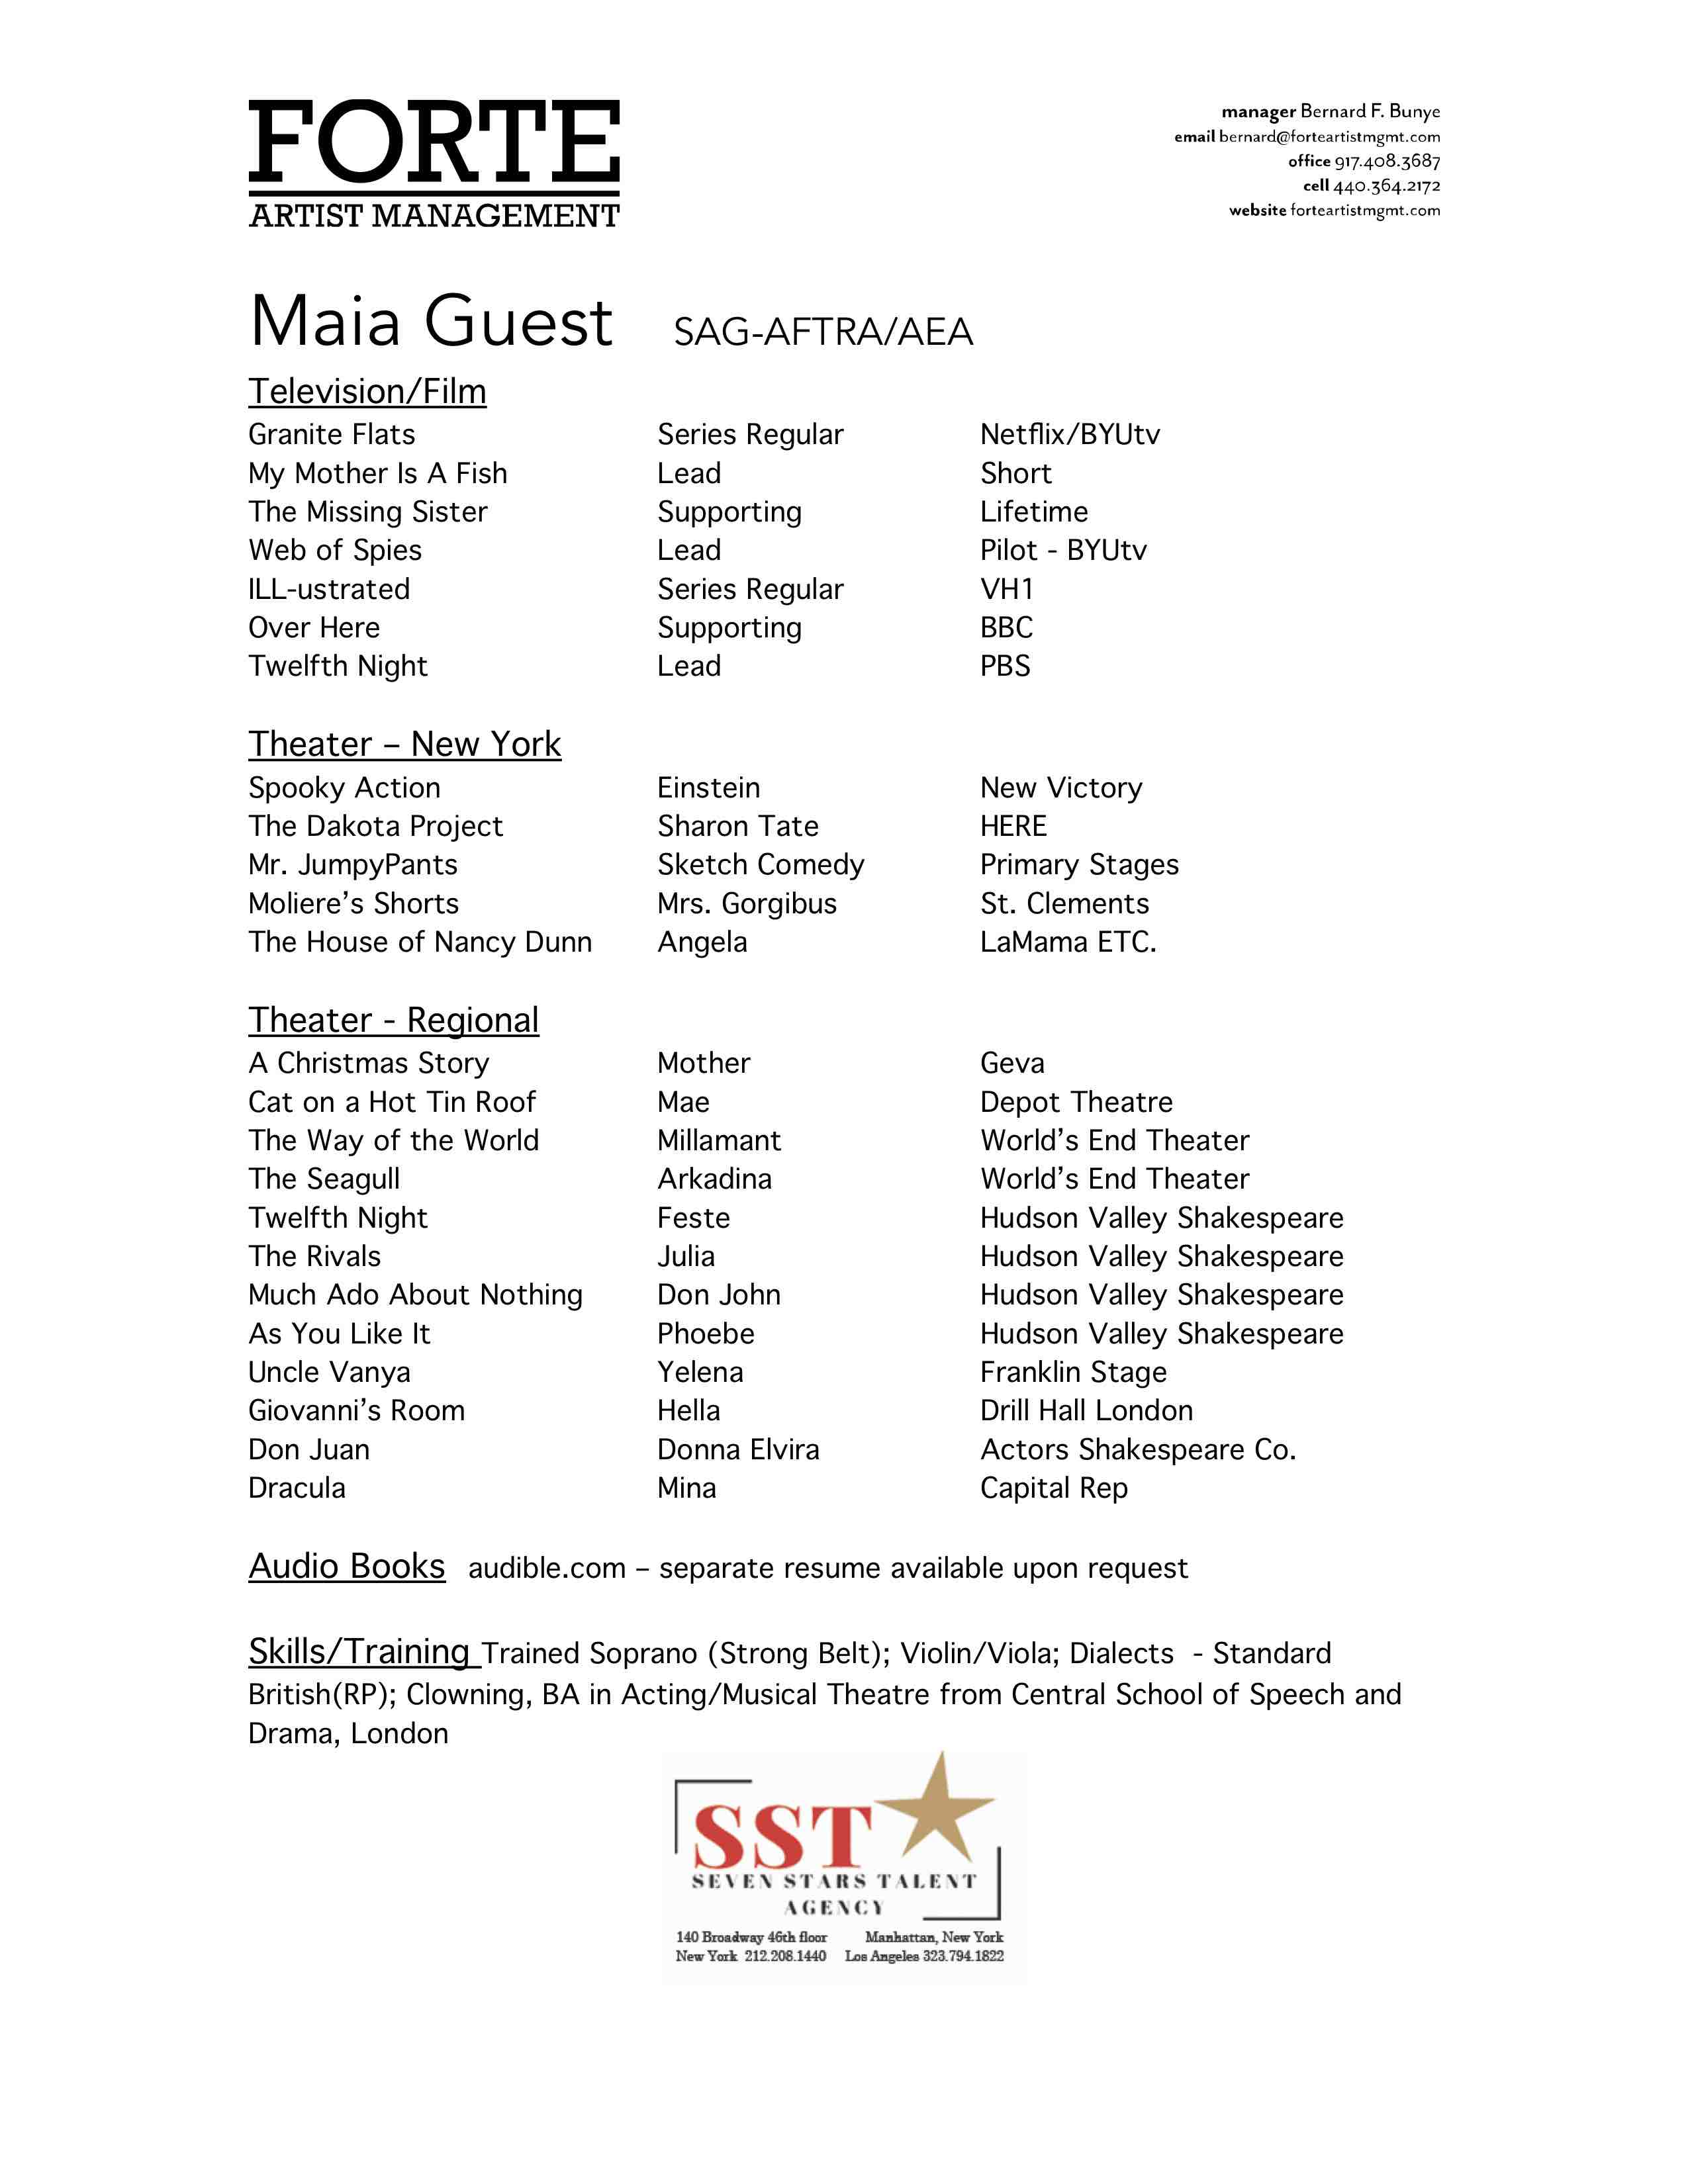 Maia Guest Resume